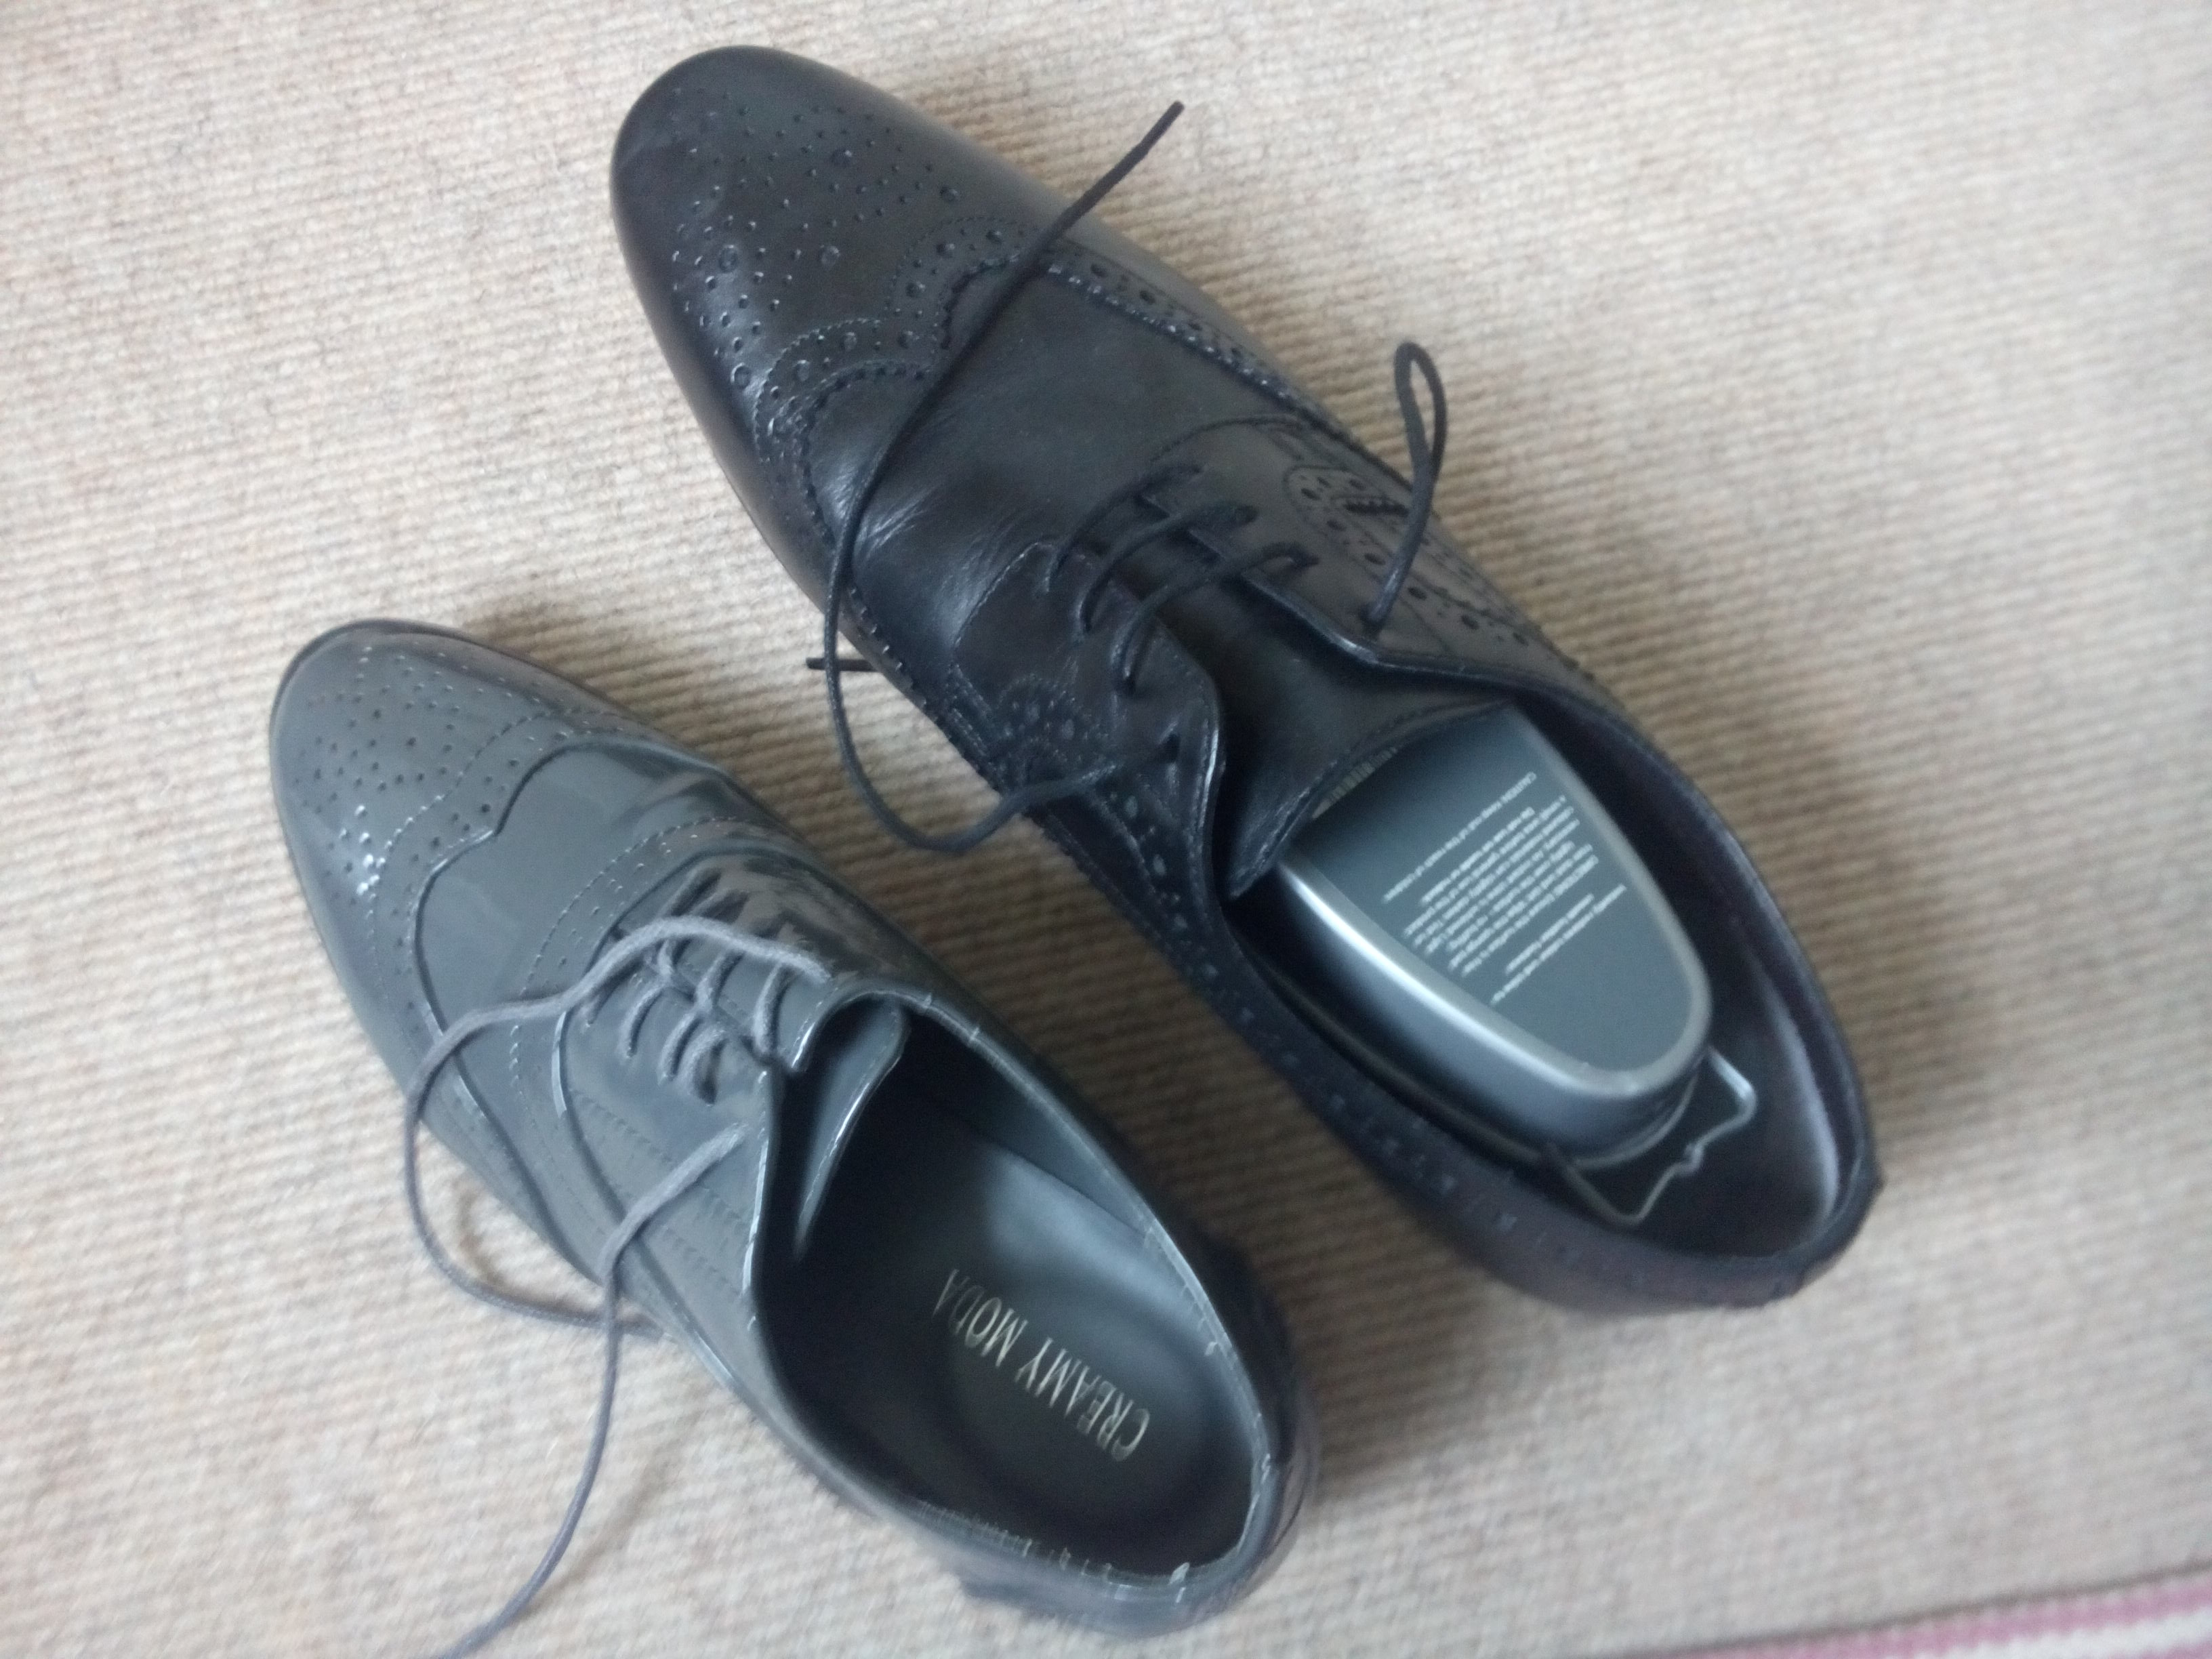 A small grey brogue shoe beside a large black brogue shoe